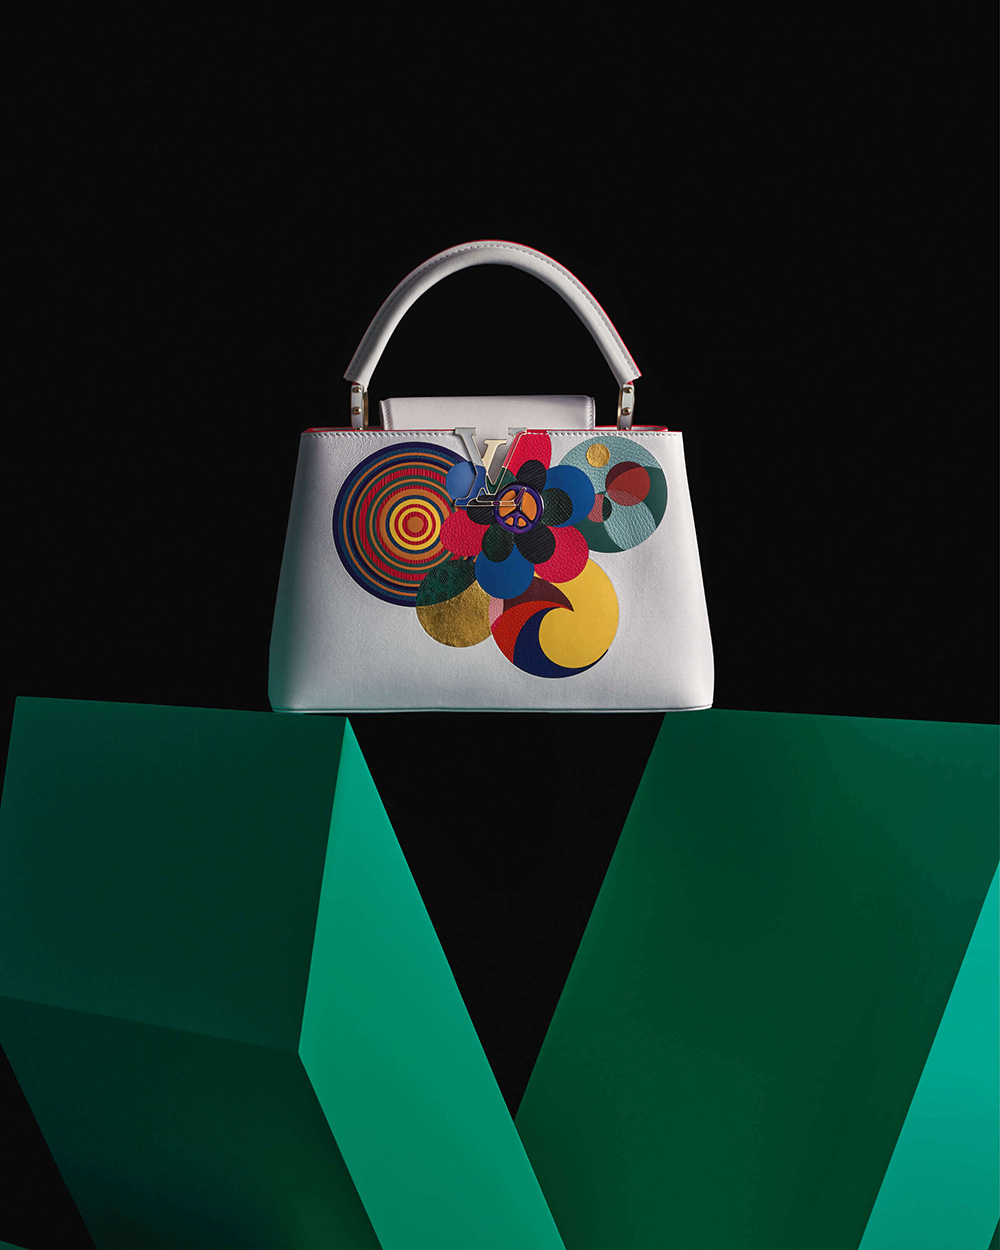 Louis Vuitton unveils its second Artycapucines collection, the most artistic collection of the season